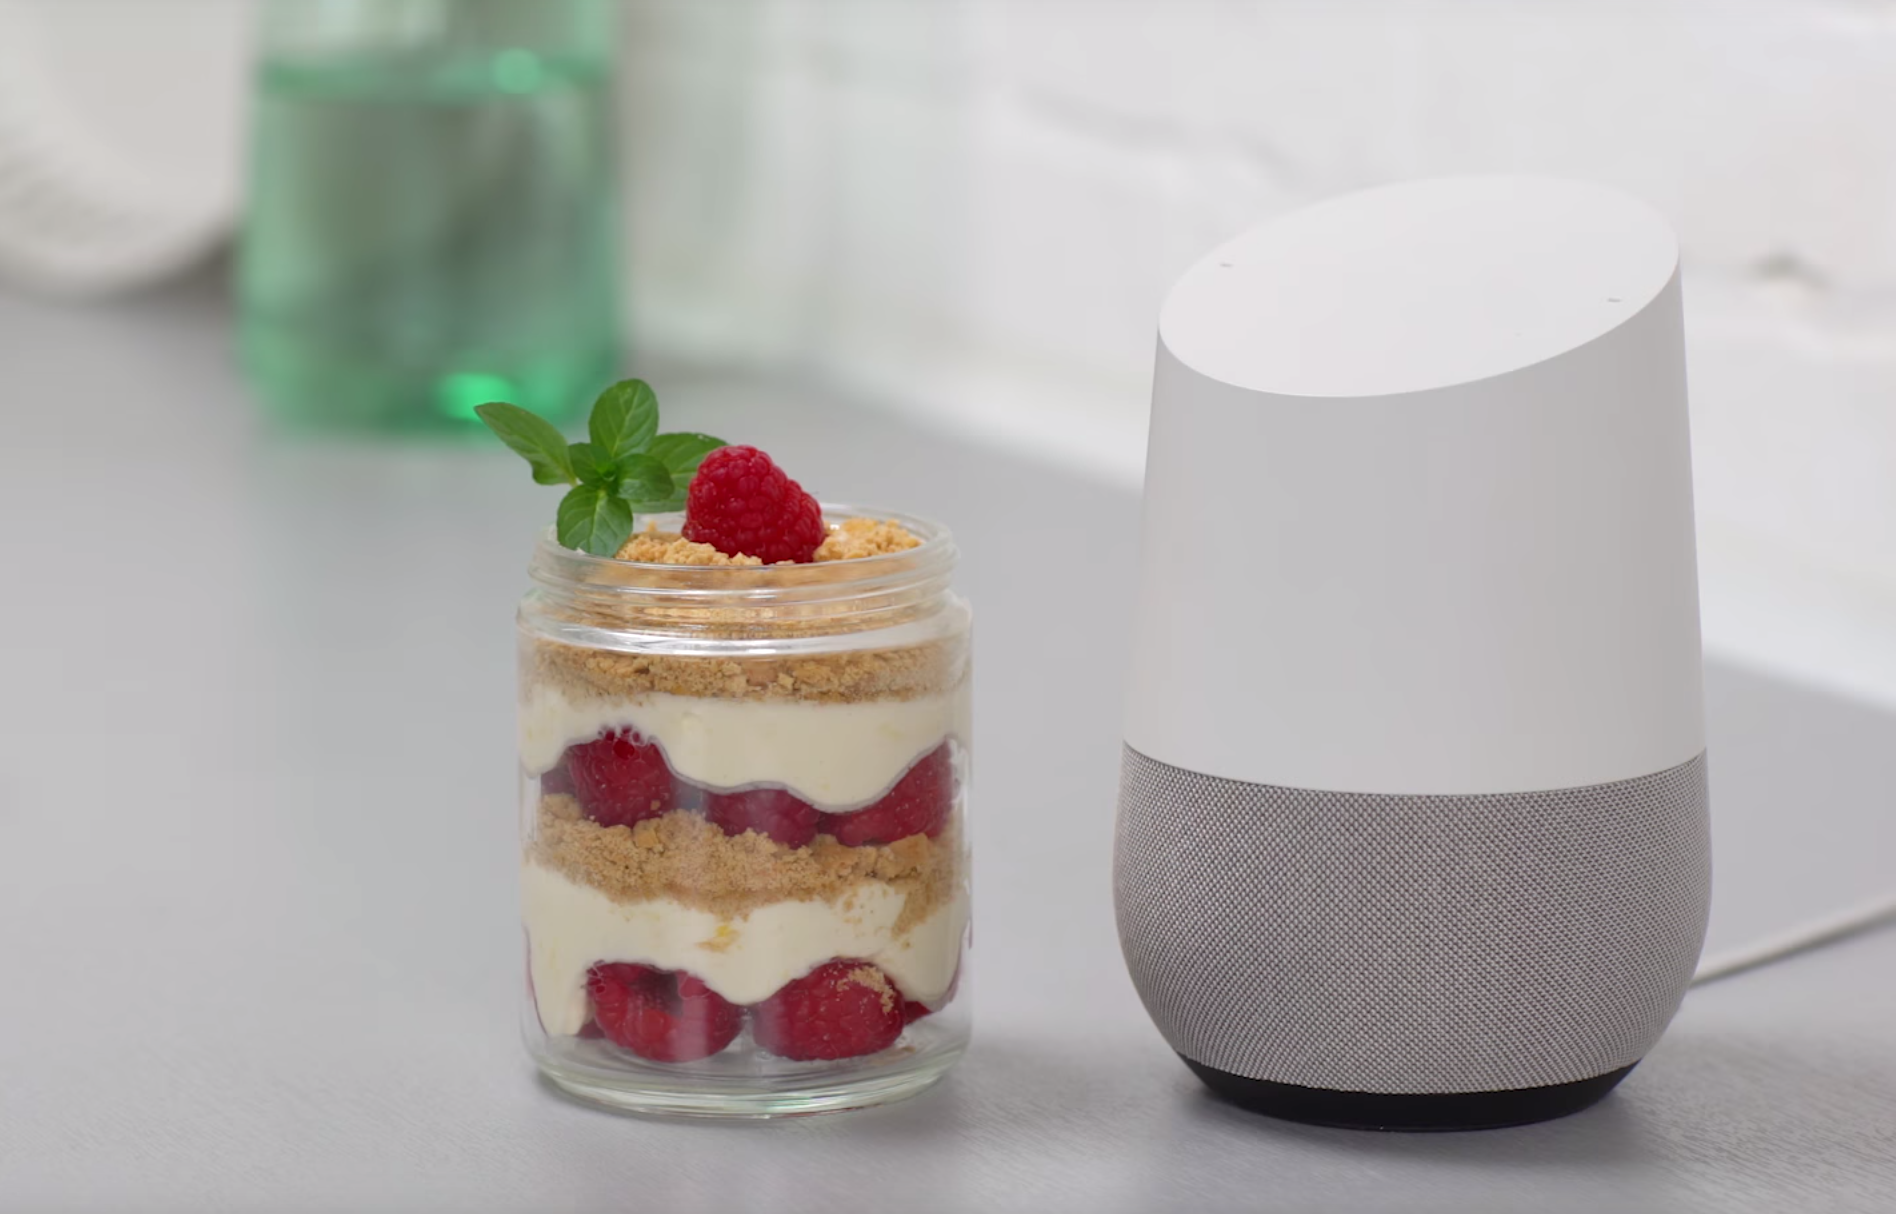 You can now pair your Google Home to other Bluetooth speakers